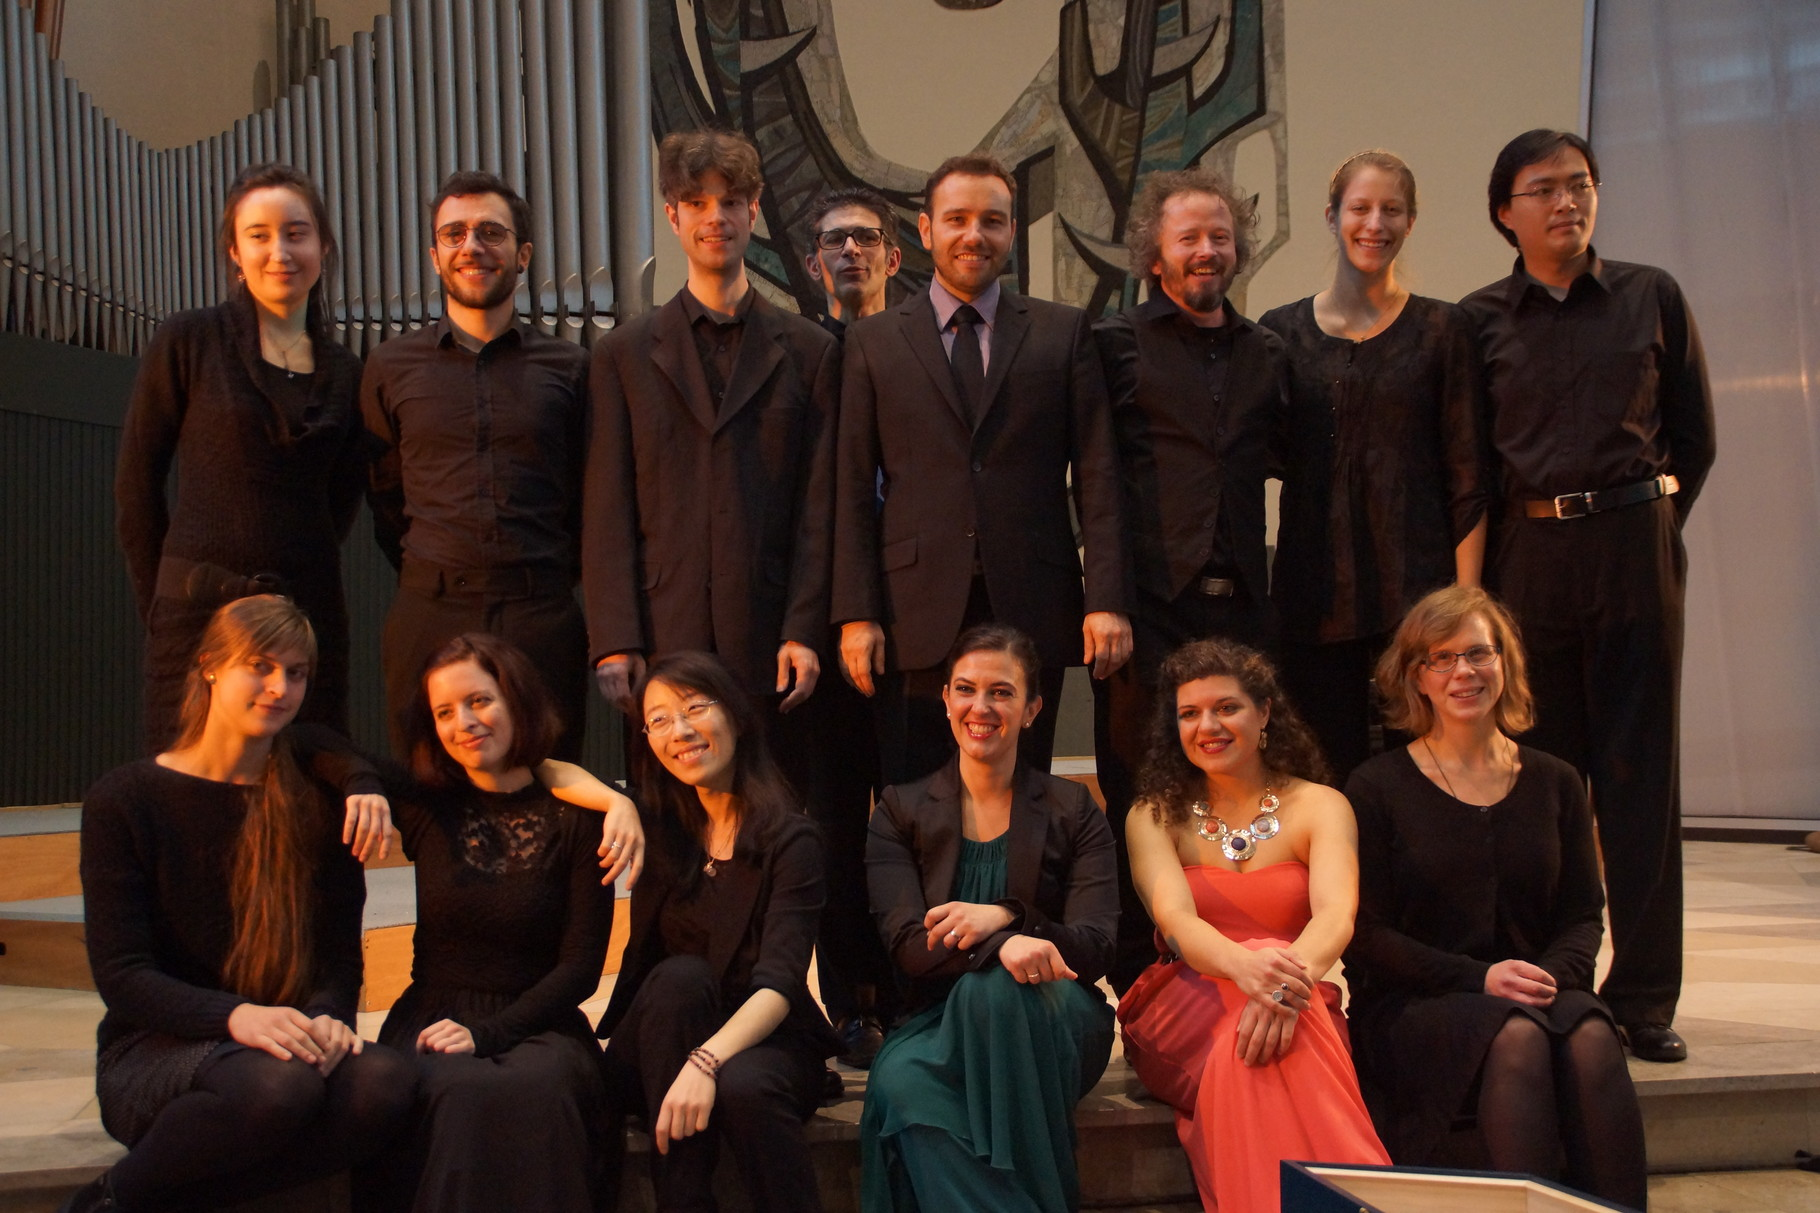 Ottone'15 - Concerto Valiante - photo by Judith van der Laan